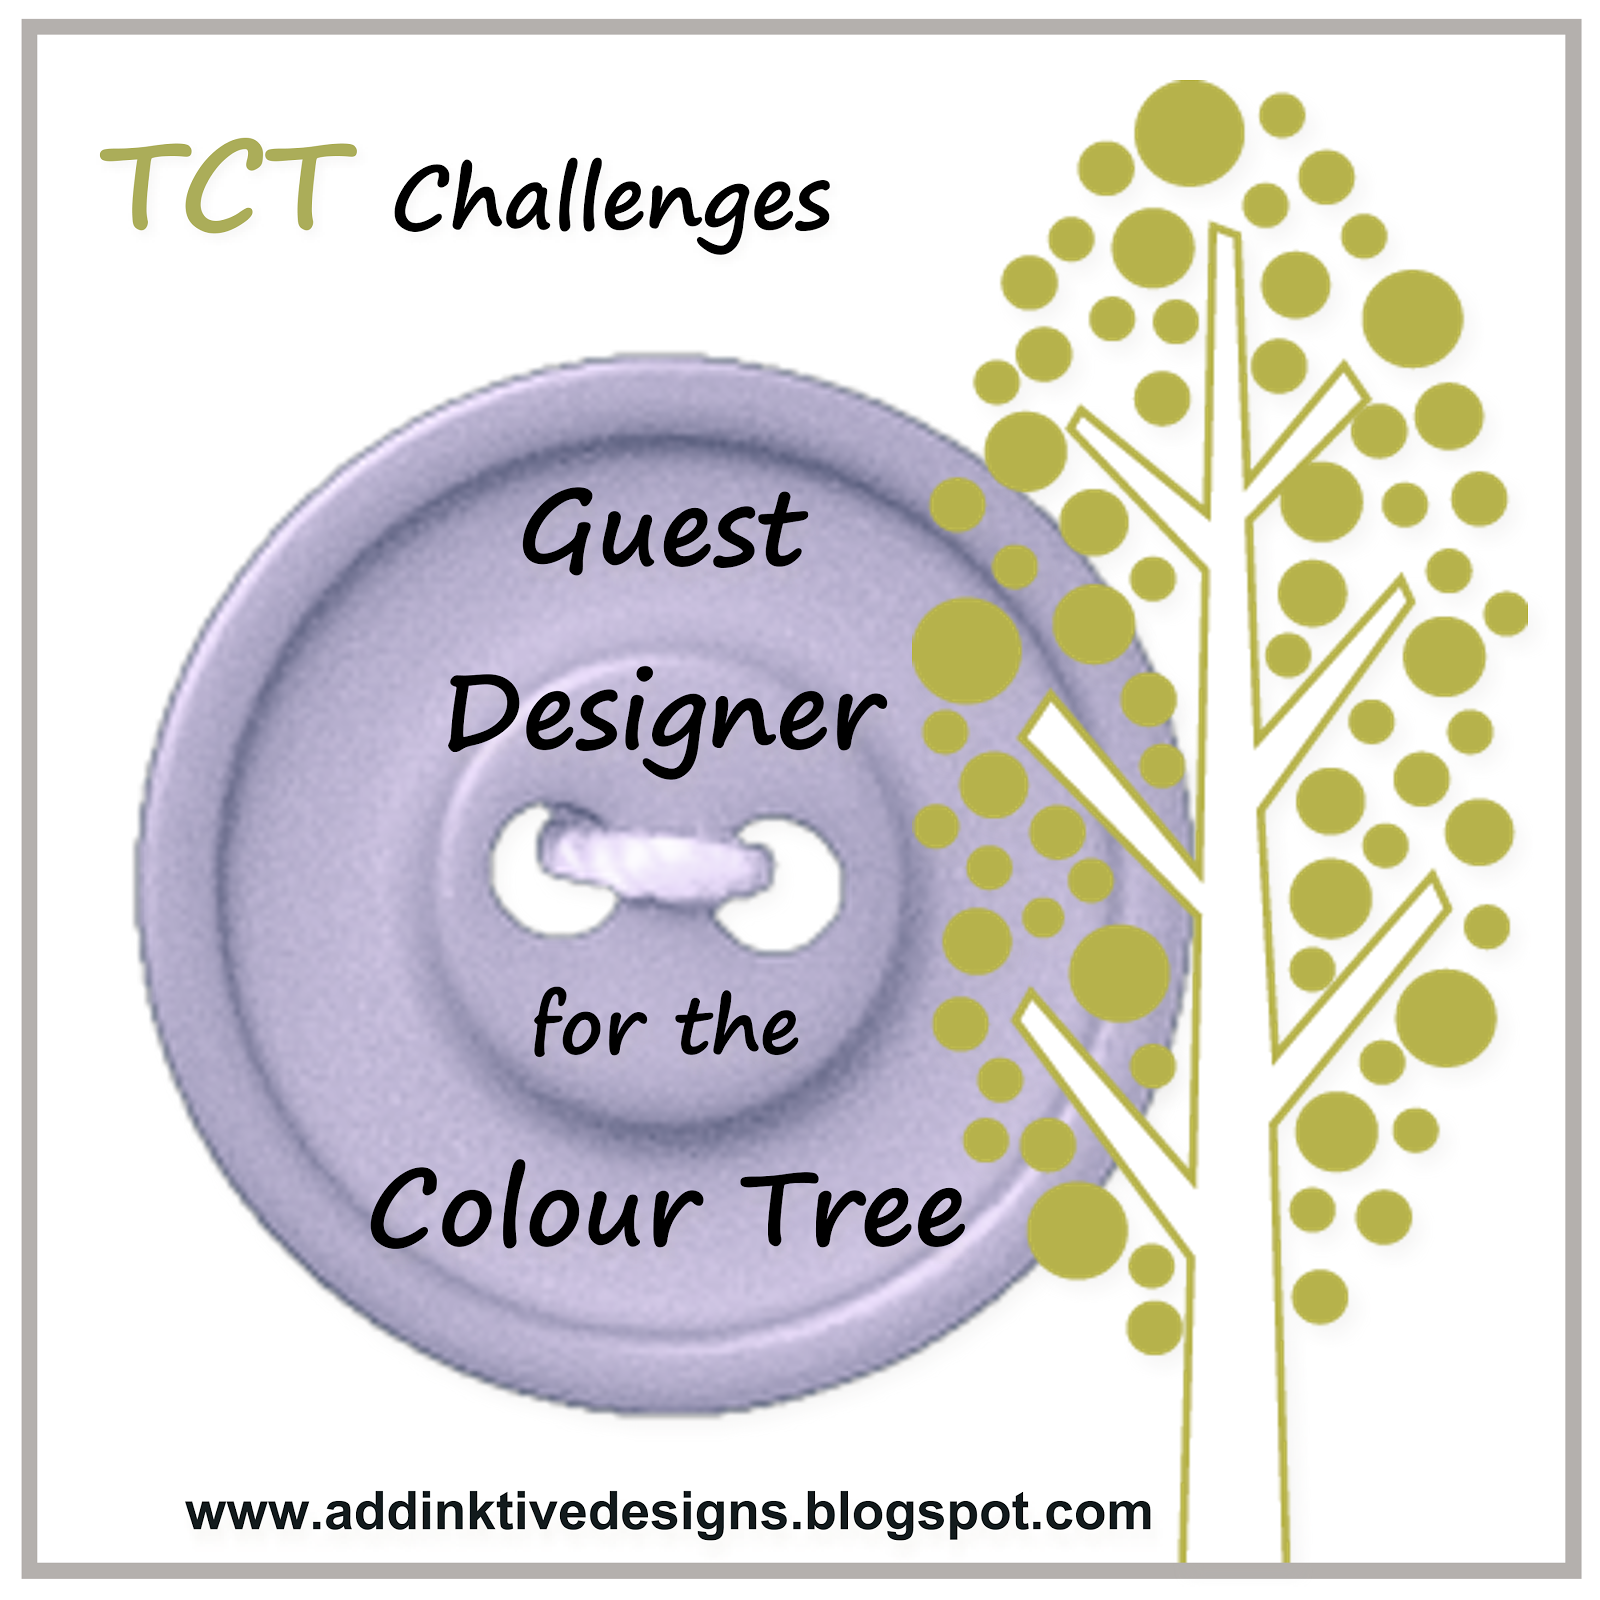 The Colour Tree Challenge Guest Designer